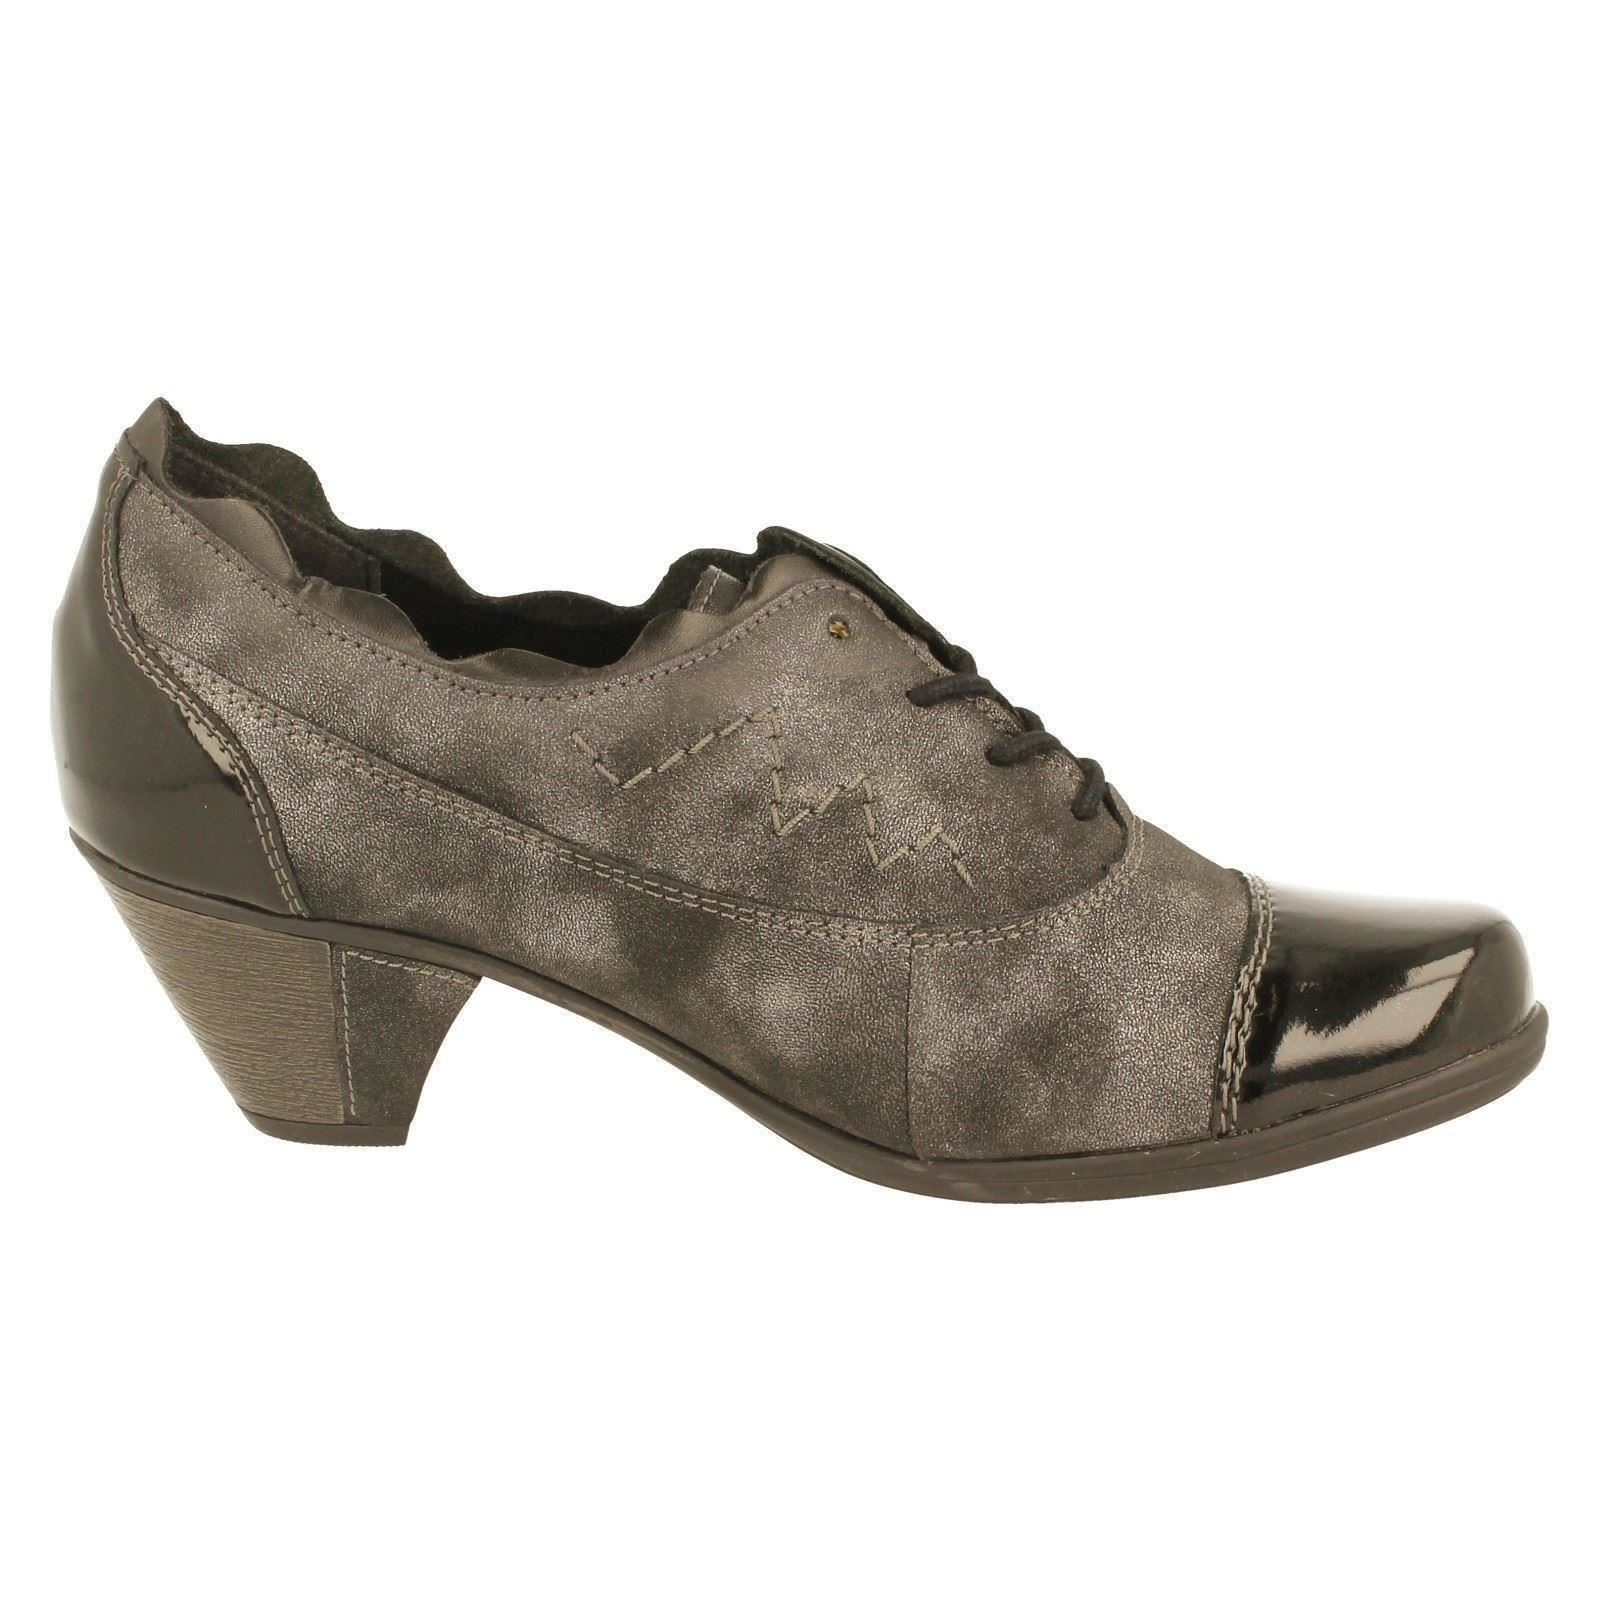 Gentlemen/Ladies Ladies Heeled Remonte Heeled Ladies Shoes D1210 -W Diverse new design Has a long reputation Reliable reputation 8f39ae